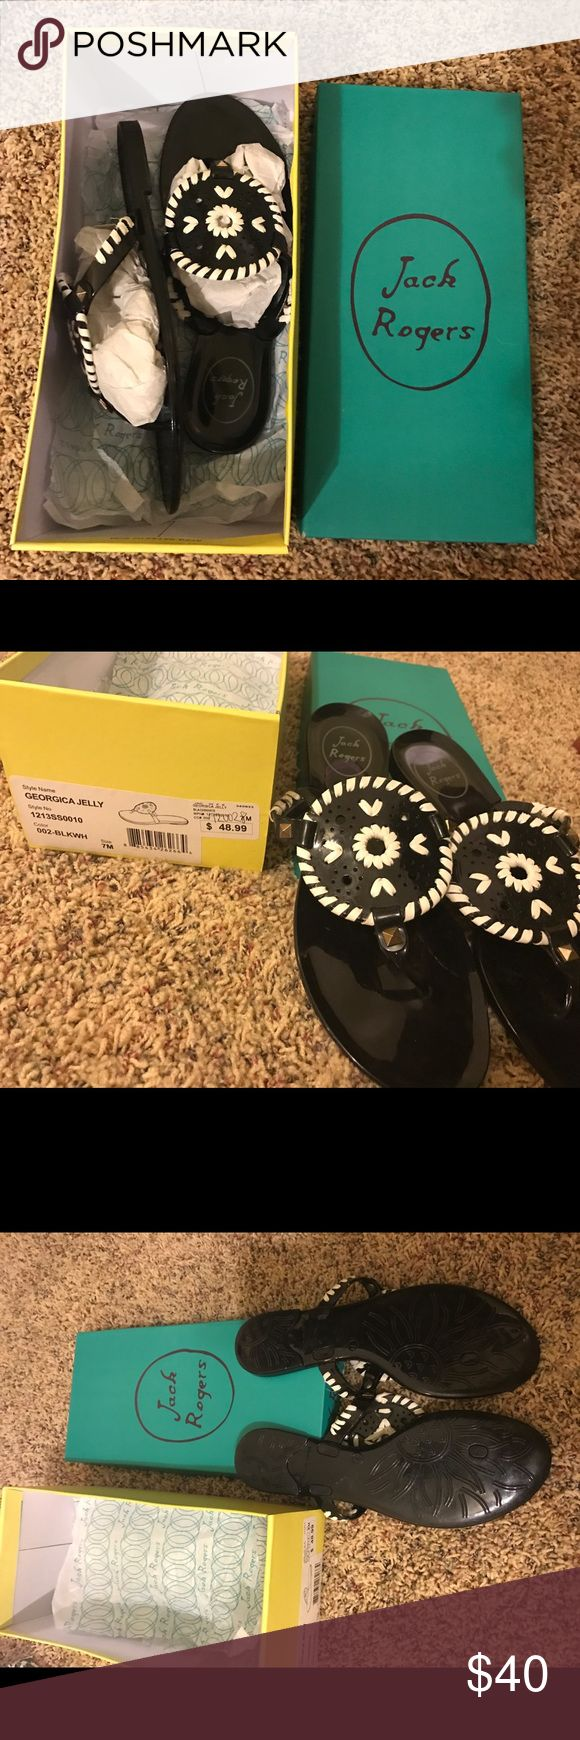 jack rogers georgica jelly sandals adorably jelly black and white jack rogers sandals!! only worn once! practically brand new!! love these but unfortunately a little too small for me. perfect for spring🌷🌷🌷 Jack Rogers Shoes Sandals